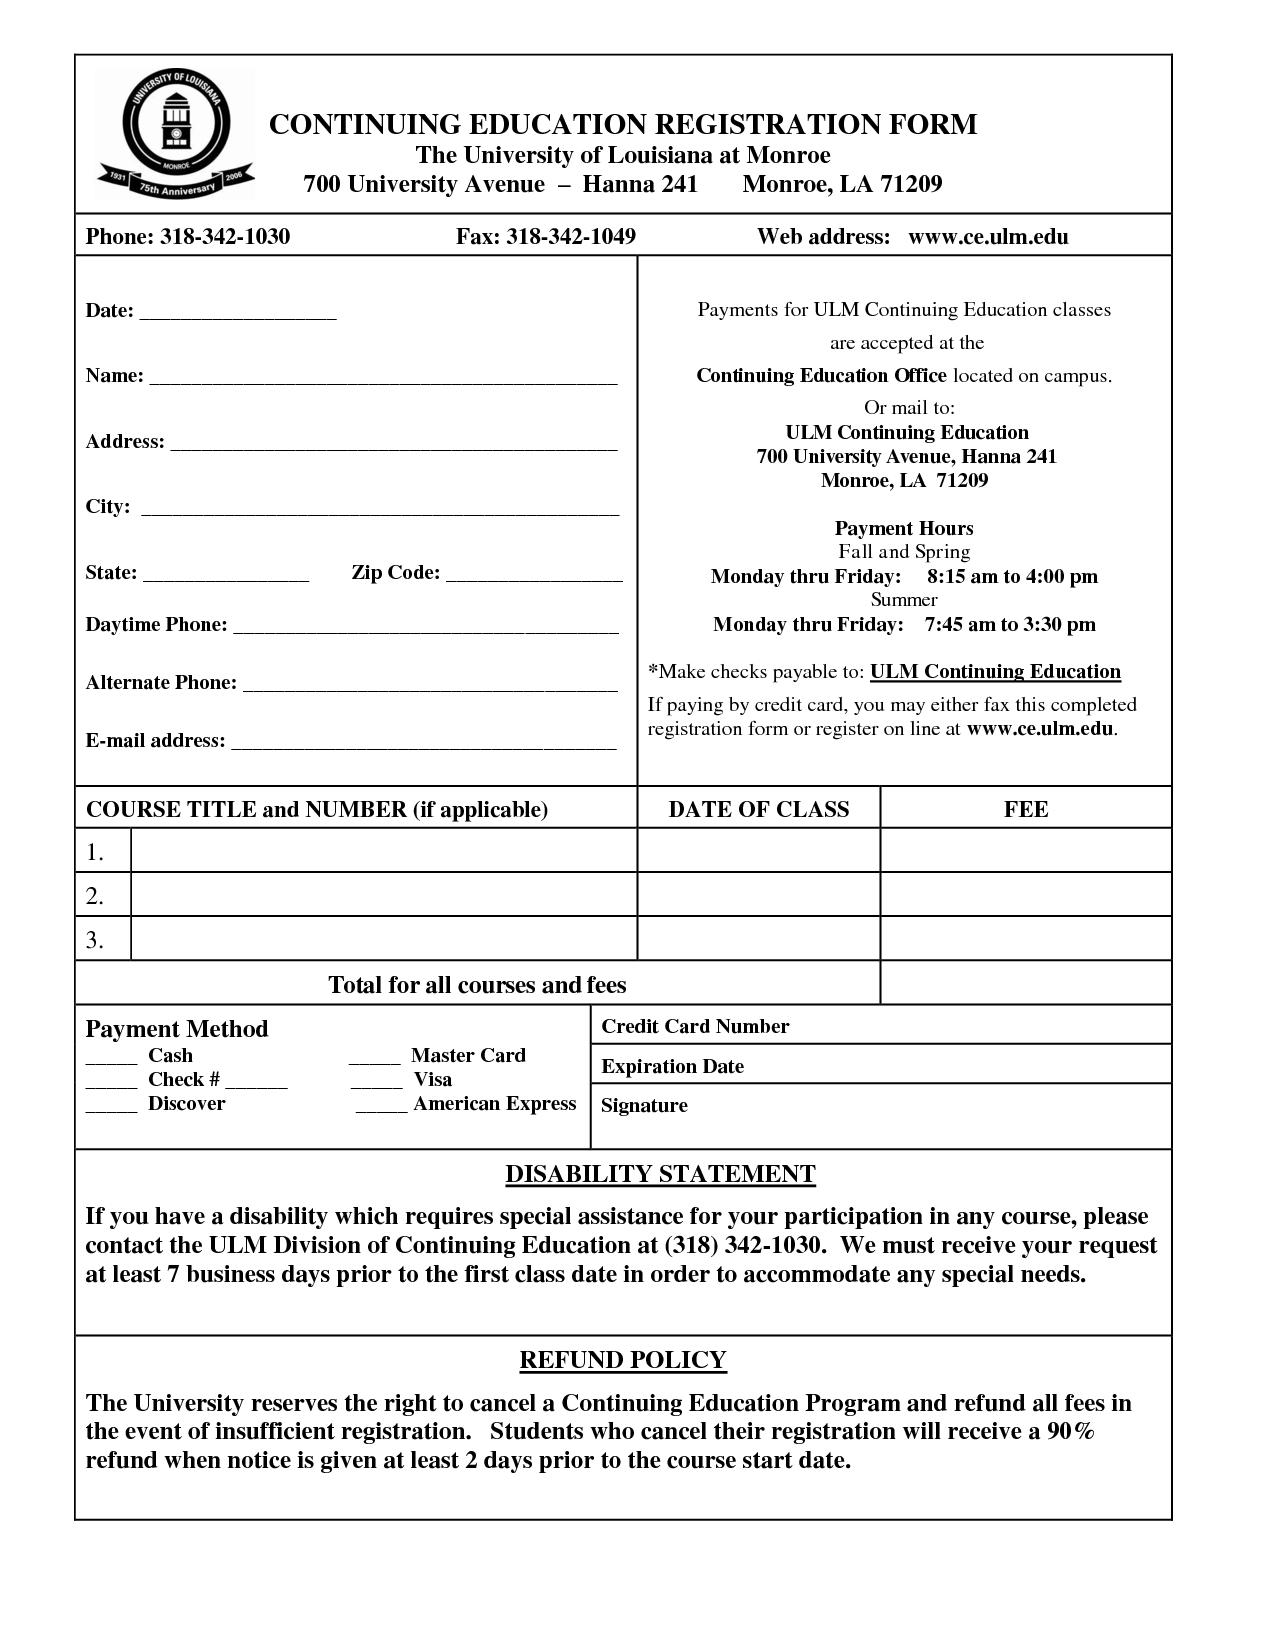 registration form template doc   Gecce.tackletarts.co